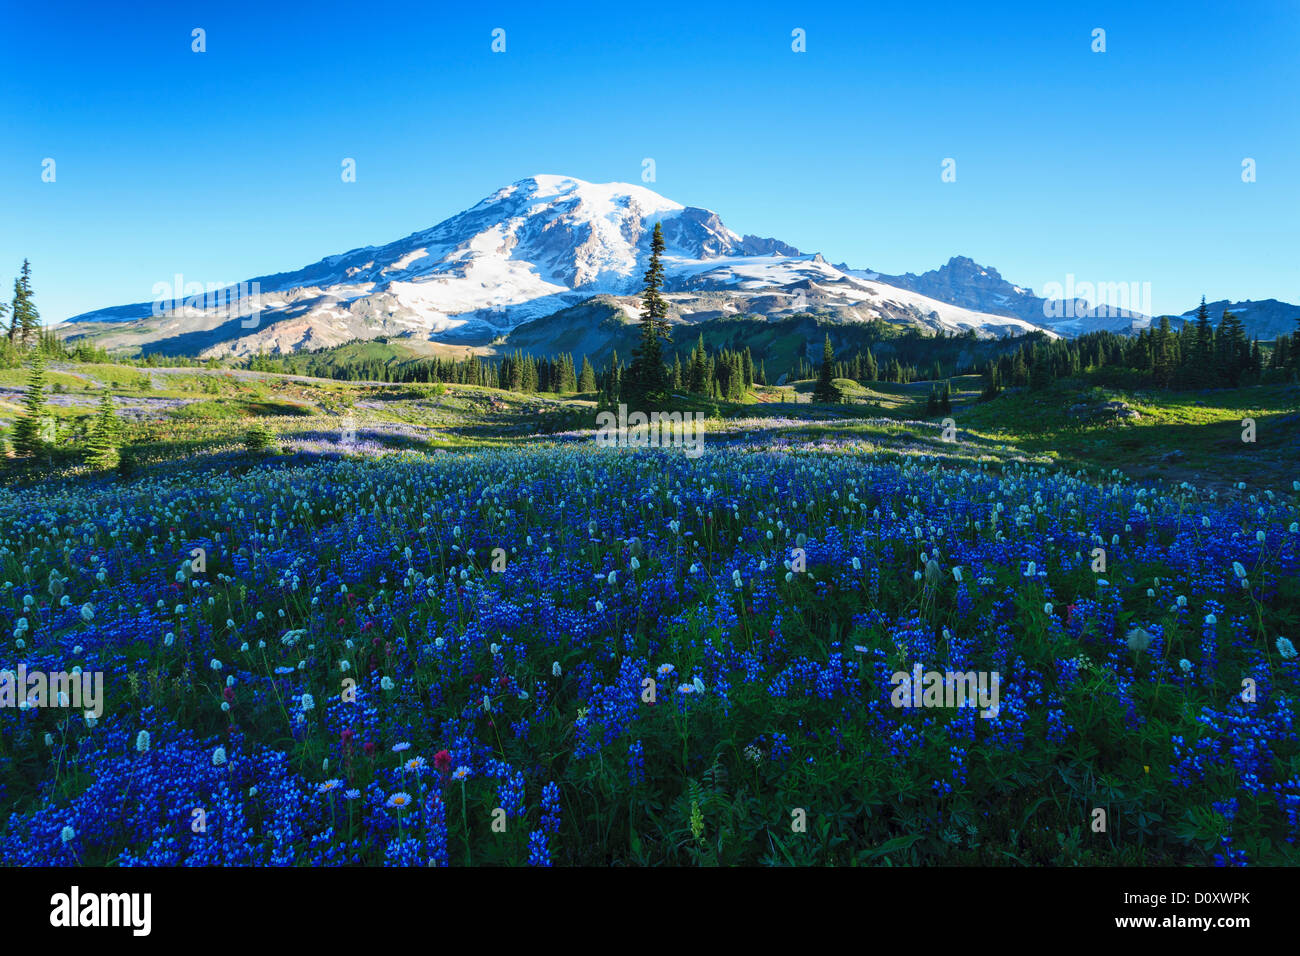 Wild Flower Meadow Stock Photos Amp Wild Flower Meadow Stock